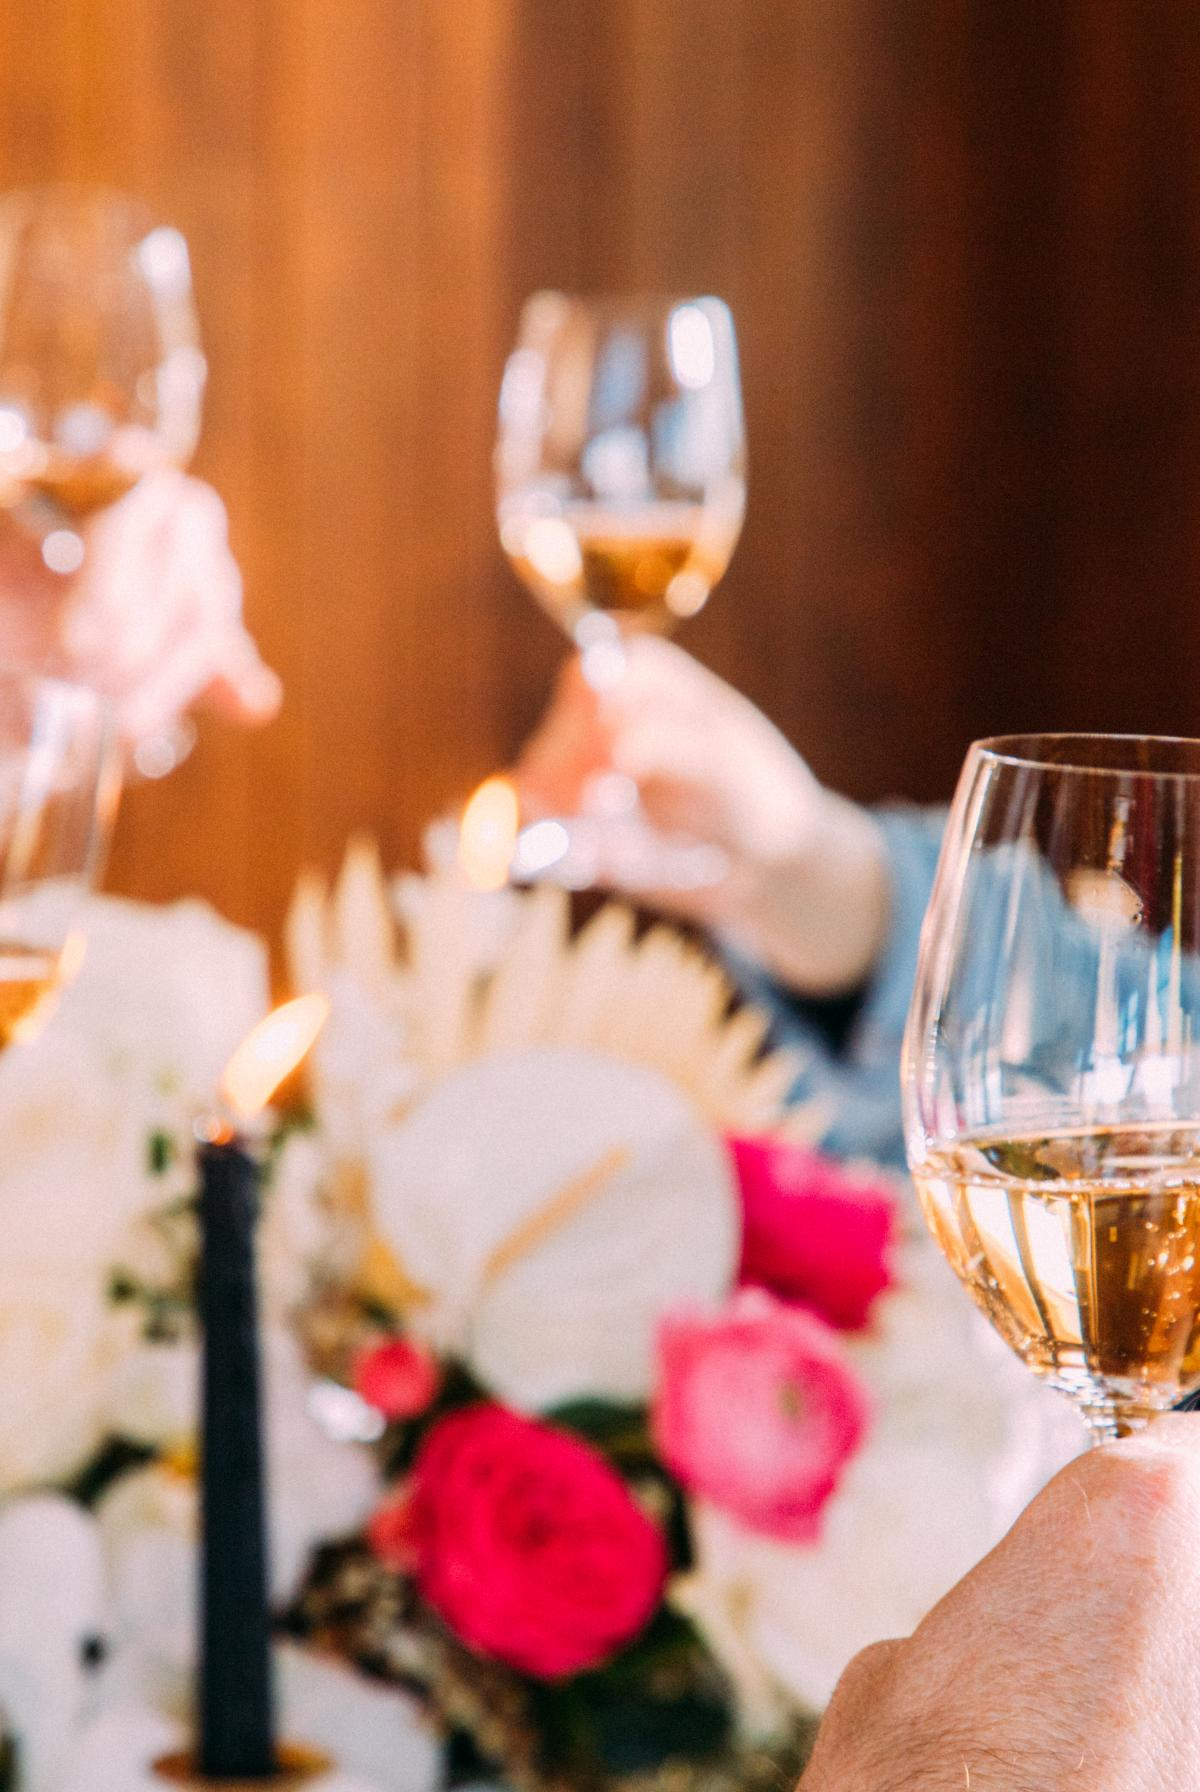 Gathering of people around a table with flowers all holding up glasses of white wine